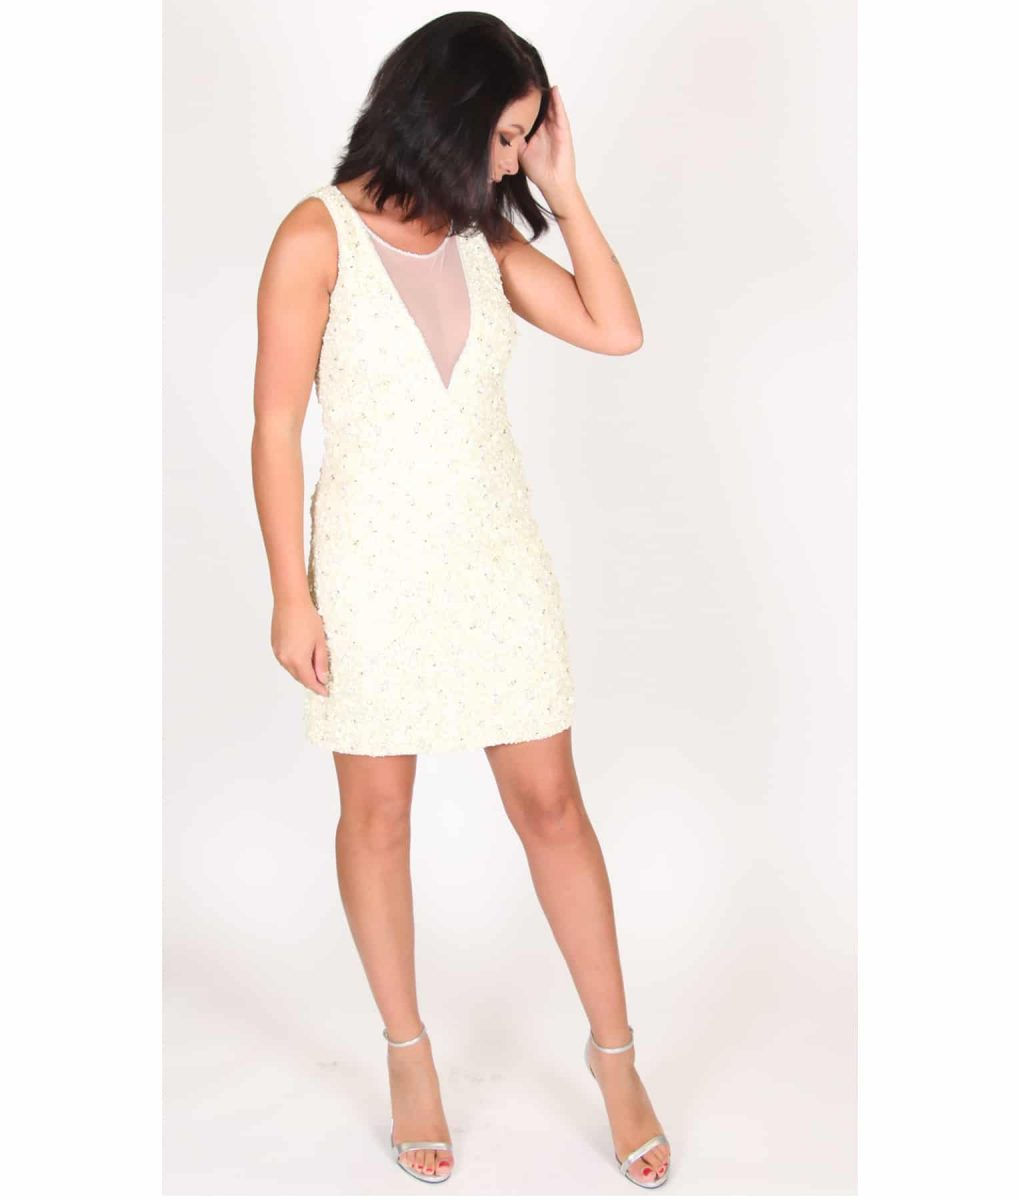 Alila Lemon Sequin Party Dress by Lace & Beads.